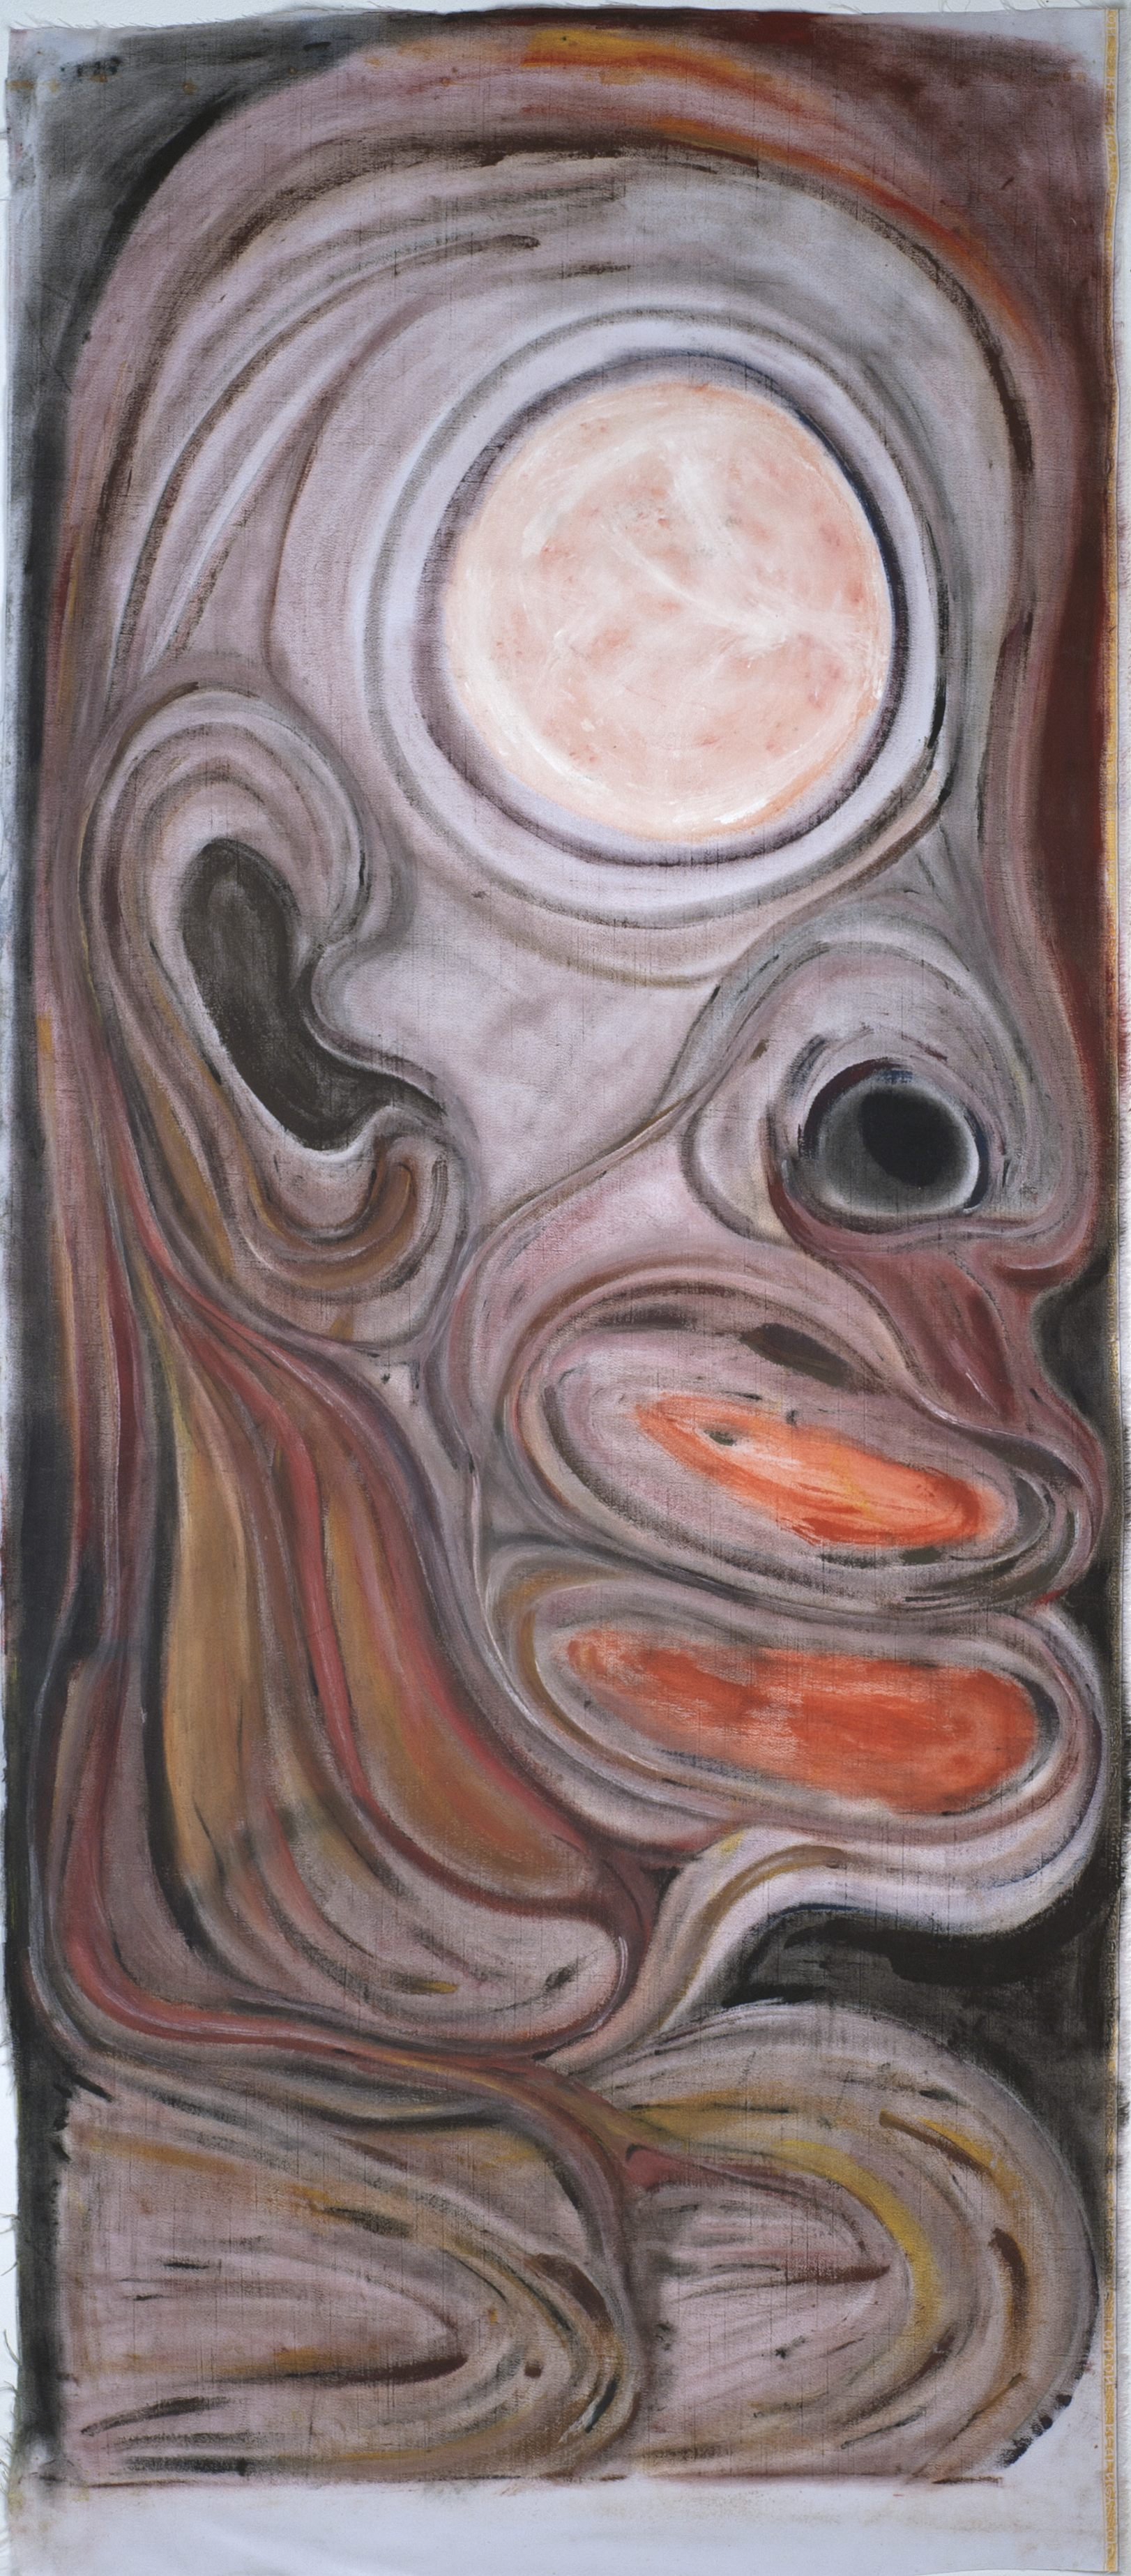 Errol McKenzie    Black Mother Rising  , 2007 Oil on linen 64.25 x 29 inches 163.2 x 73.7 cm EMc 8